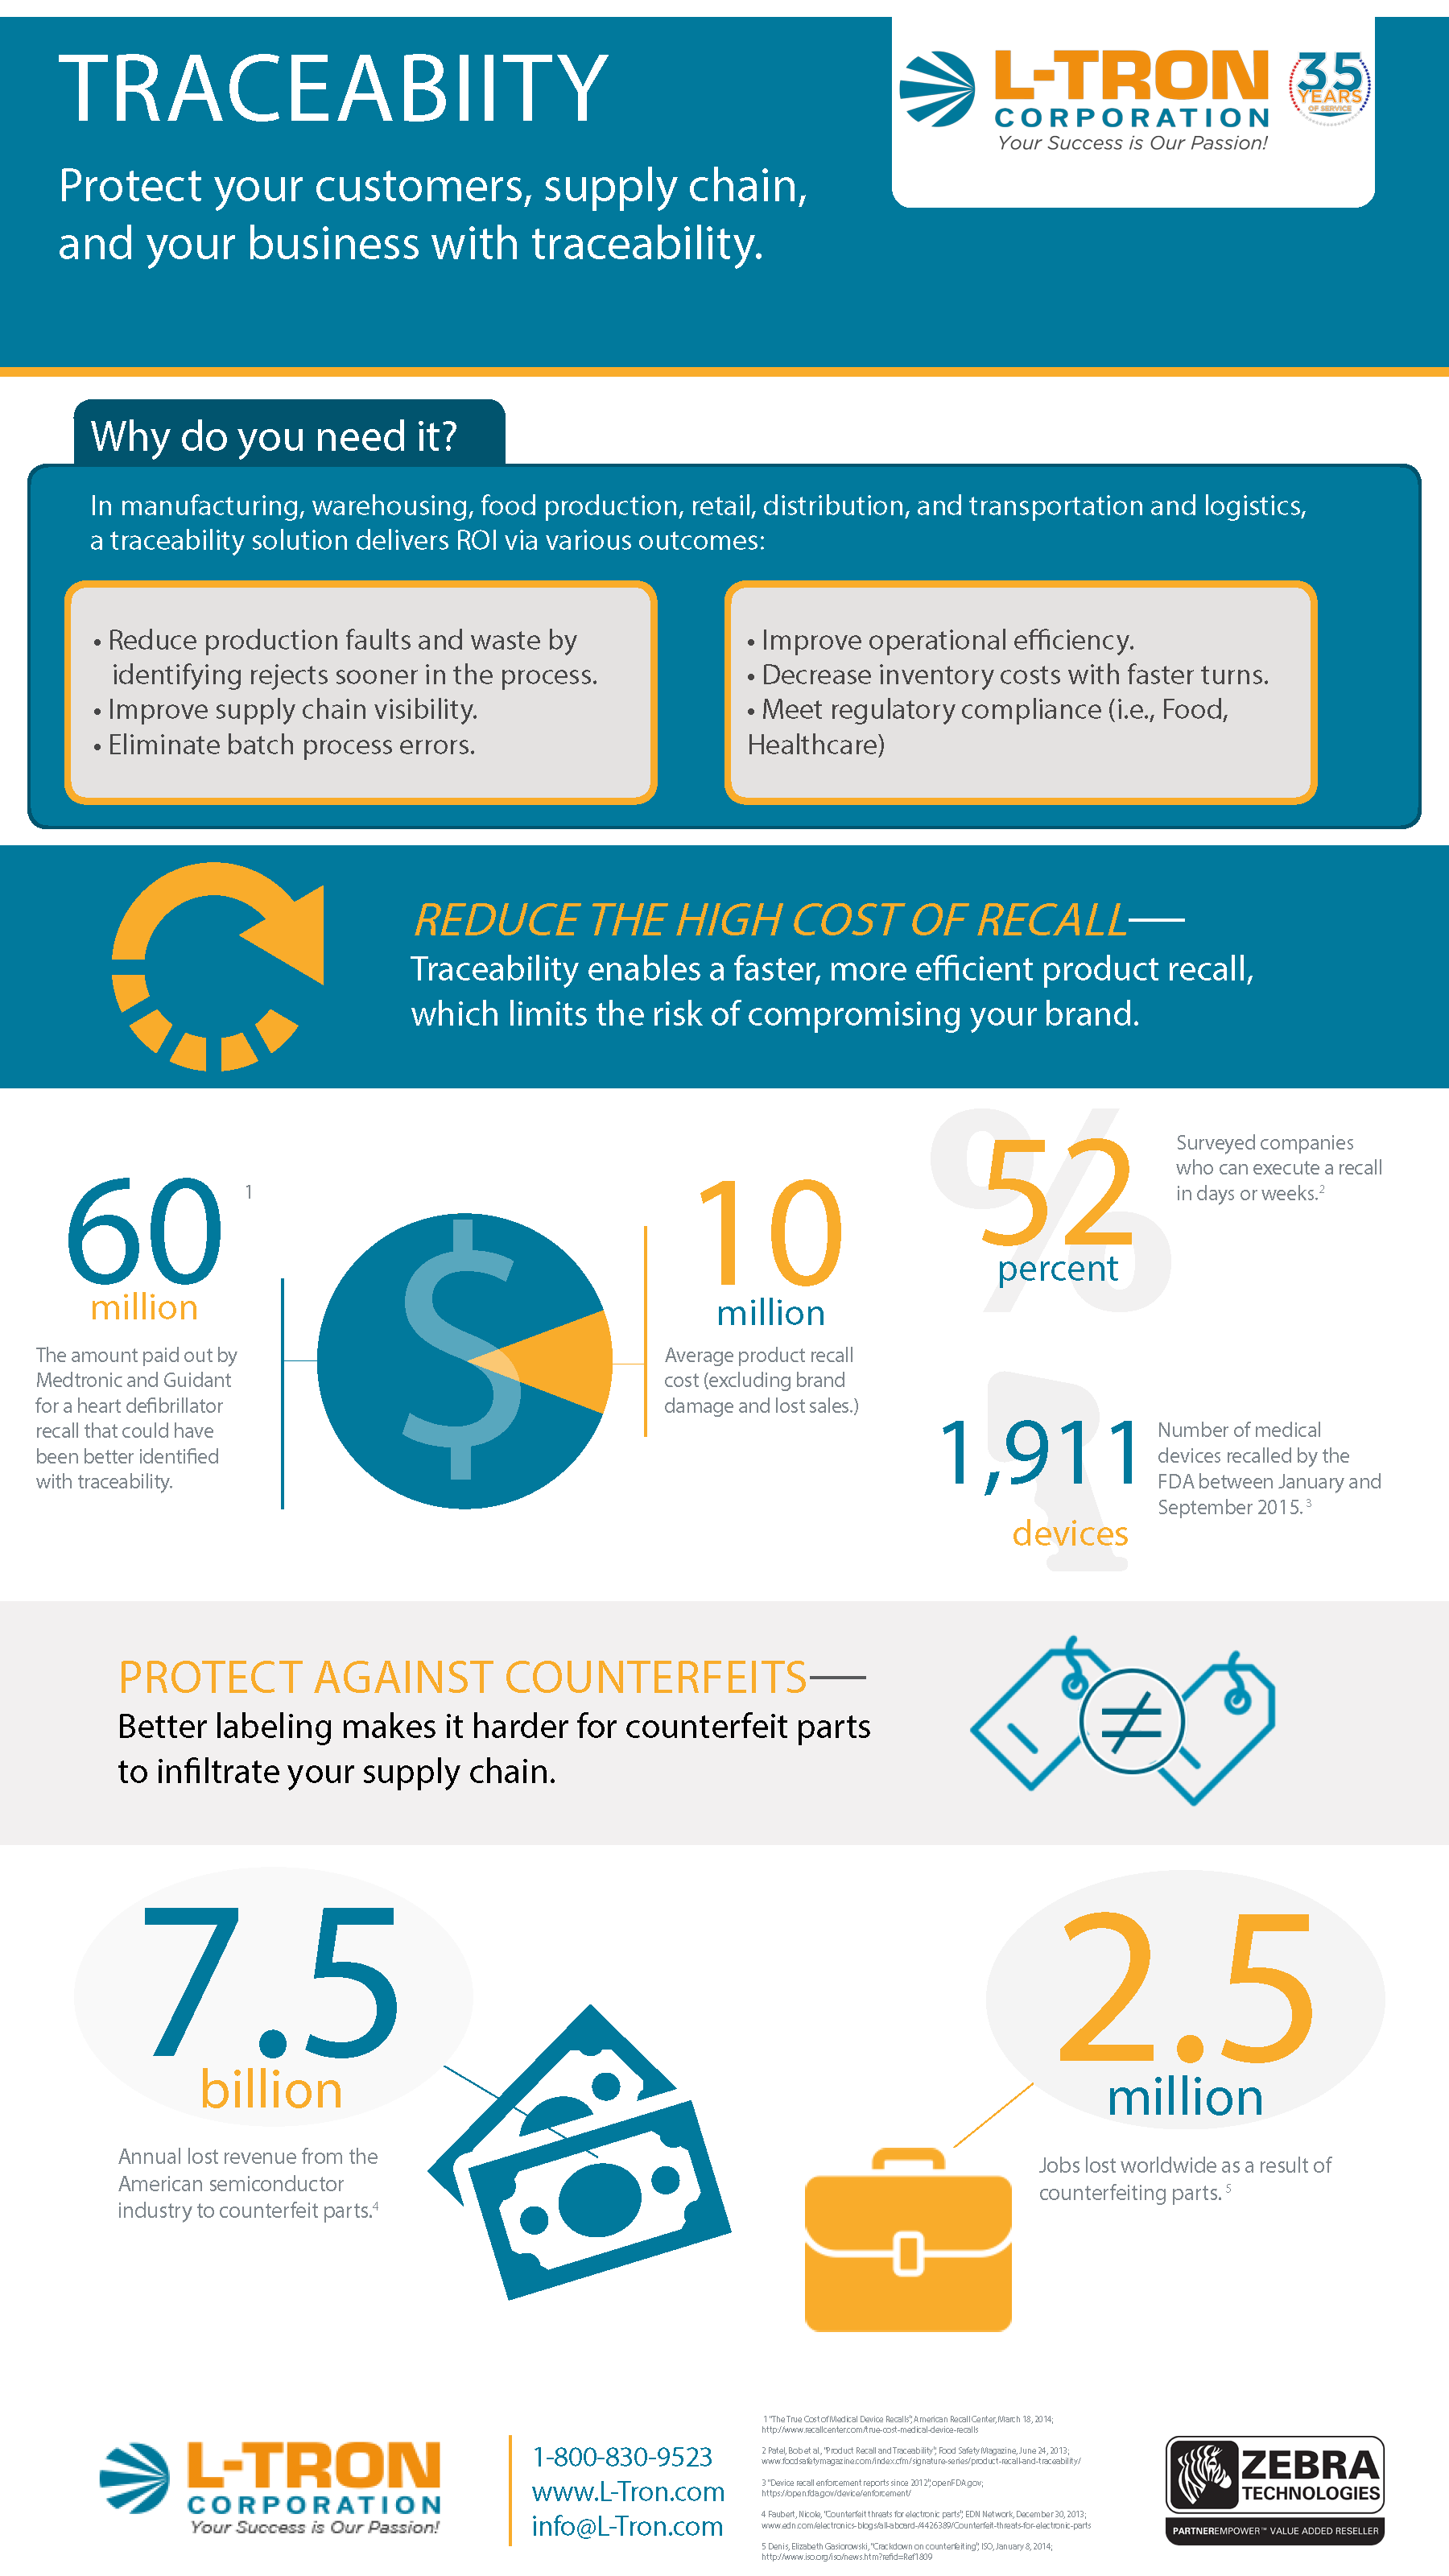 traceability overview infographic